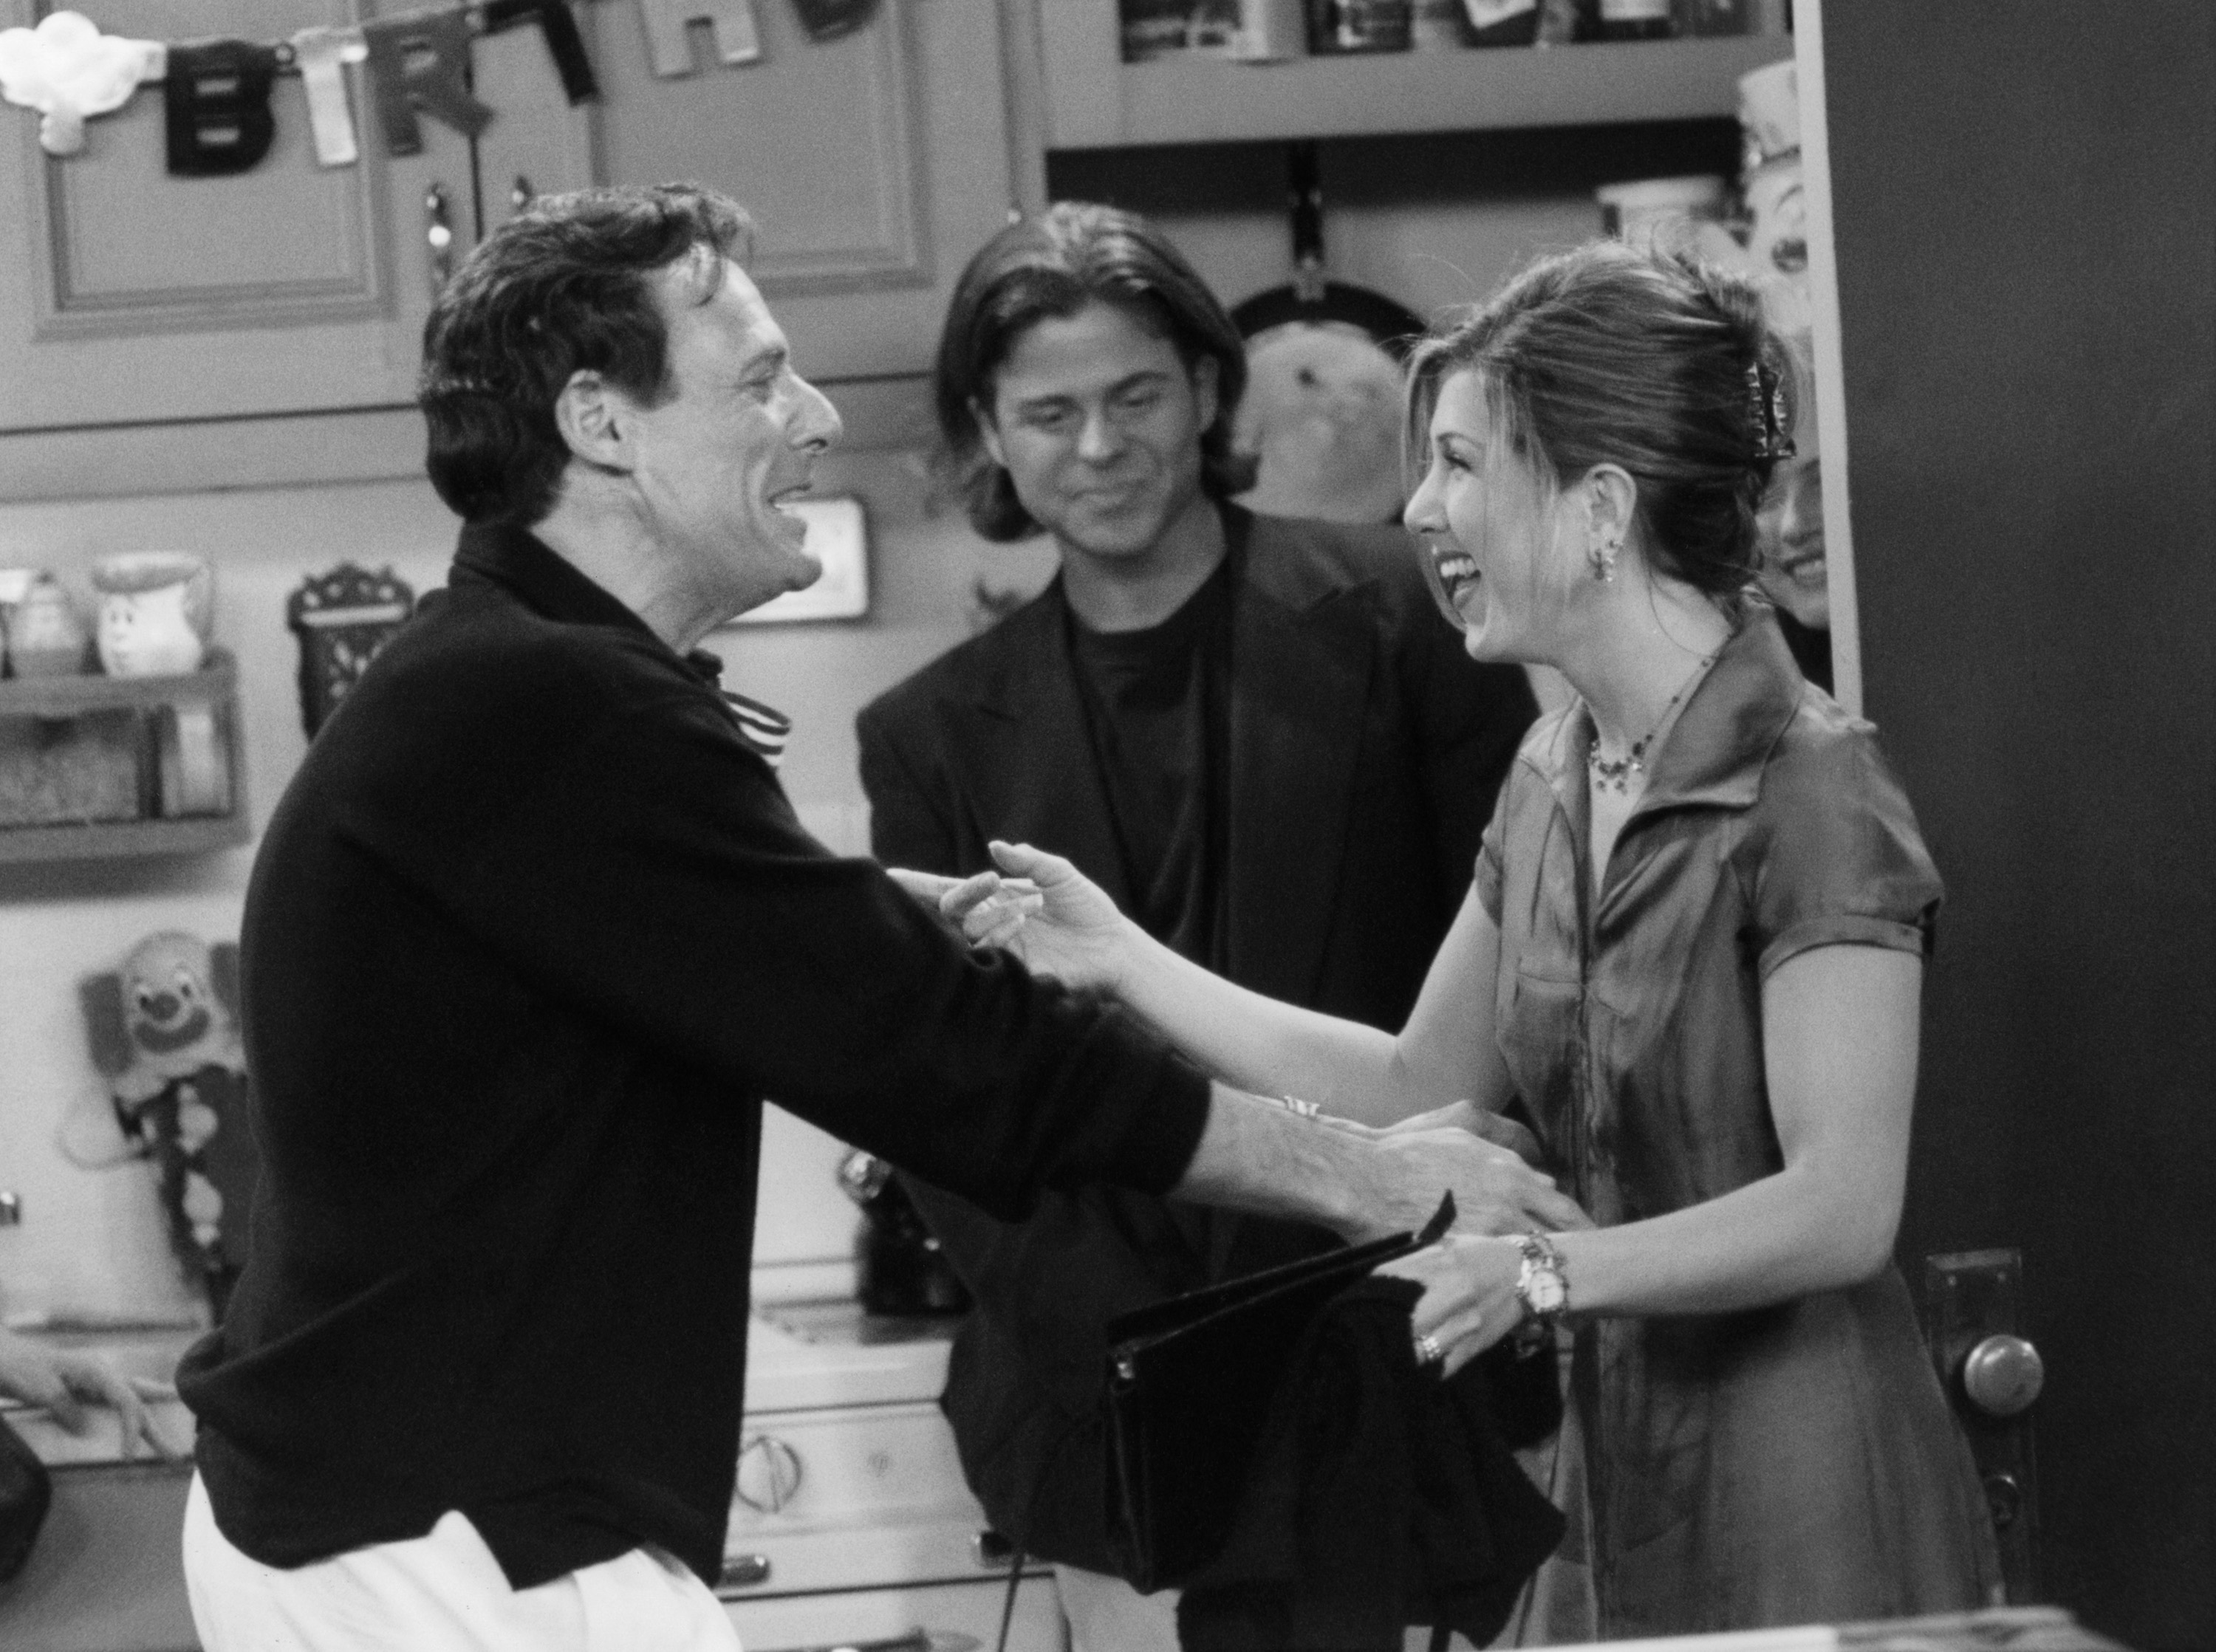 """FRIENDS -- """"The One with the Two Parties"""" Episode 22 -- Air Date 05/02/1996 -- Pictured: (l-r) Ron Leibman as Dr. Leonard Green, Jennifer Aniston as Rachel Green  (Photo by NBCU Photo Bank/NBCUniversal via Getty Images via Getty Images)"""